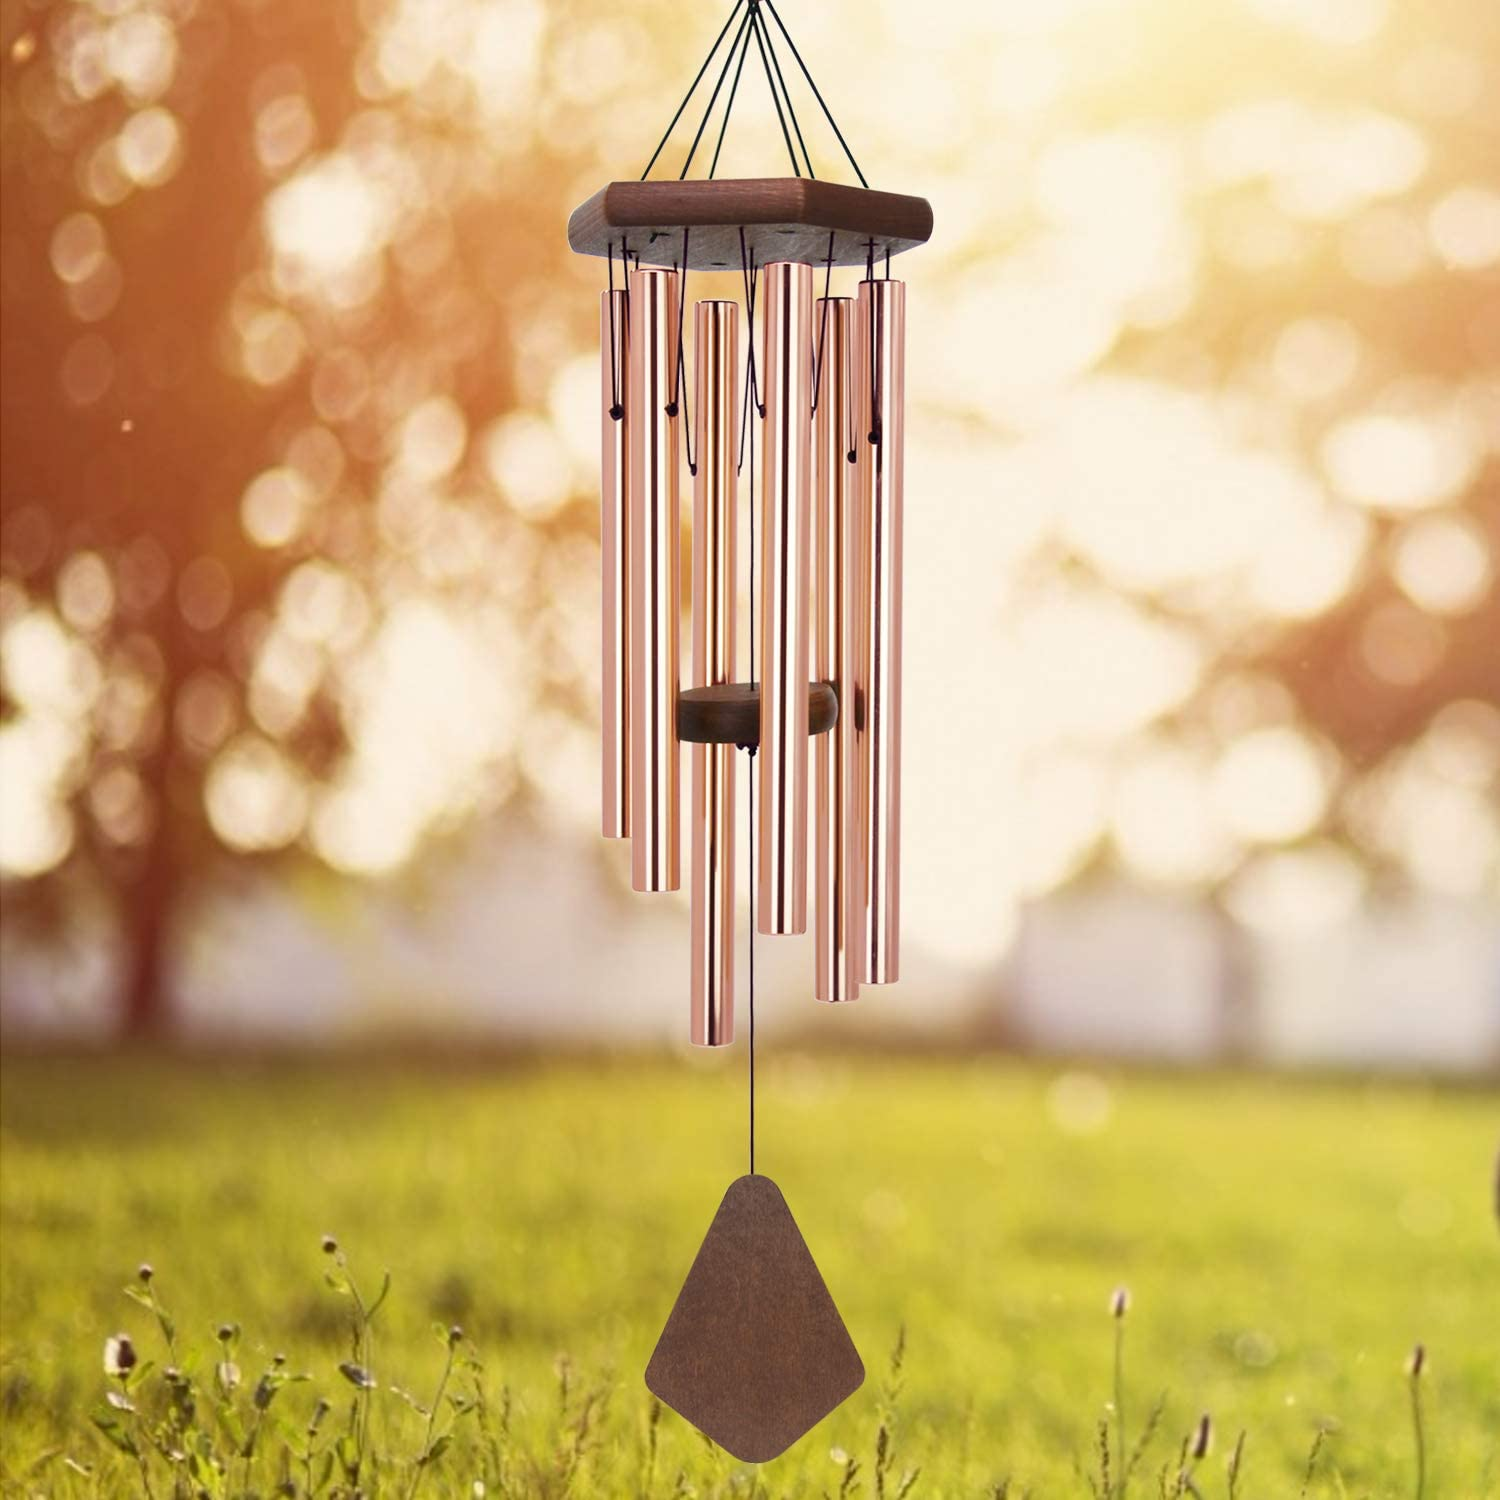 ASTARIN Memorial Wind Chimes Outdoor Deep Tone, 30 Inch Sympathy Wind Chime Outdoor, Weeding Wind-Chime Personalized with 6 Tuned Tubes, Elegant Chime for Garden Patio Balcony and Home, Rose Golden